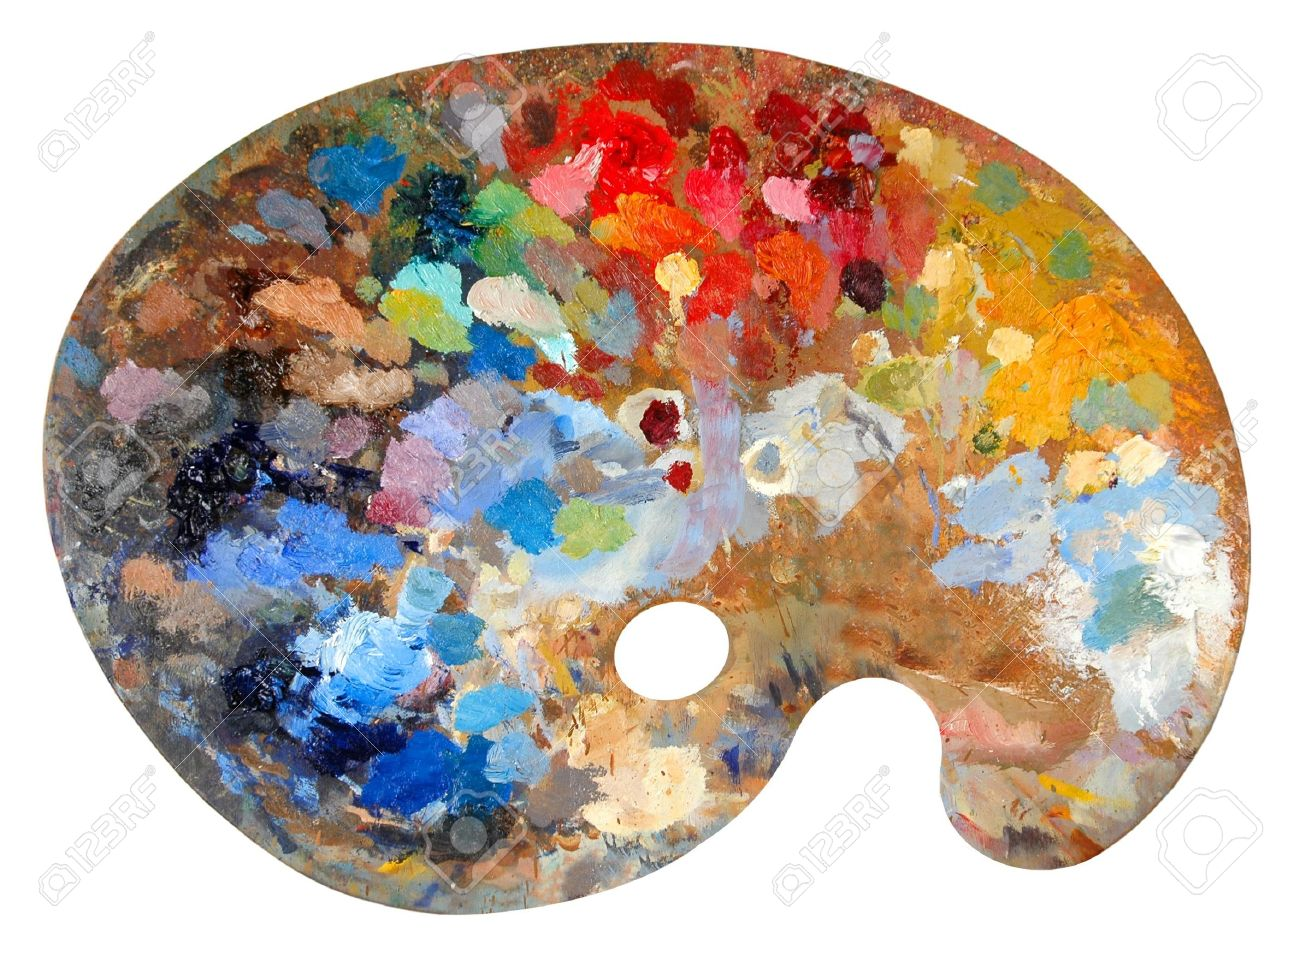 Artist's palette with multiple